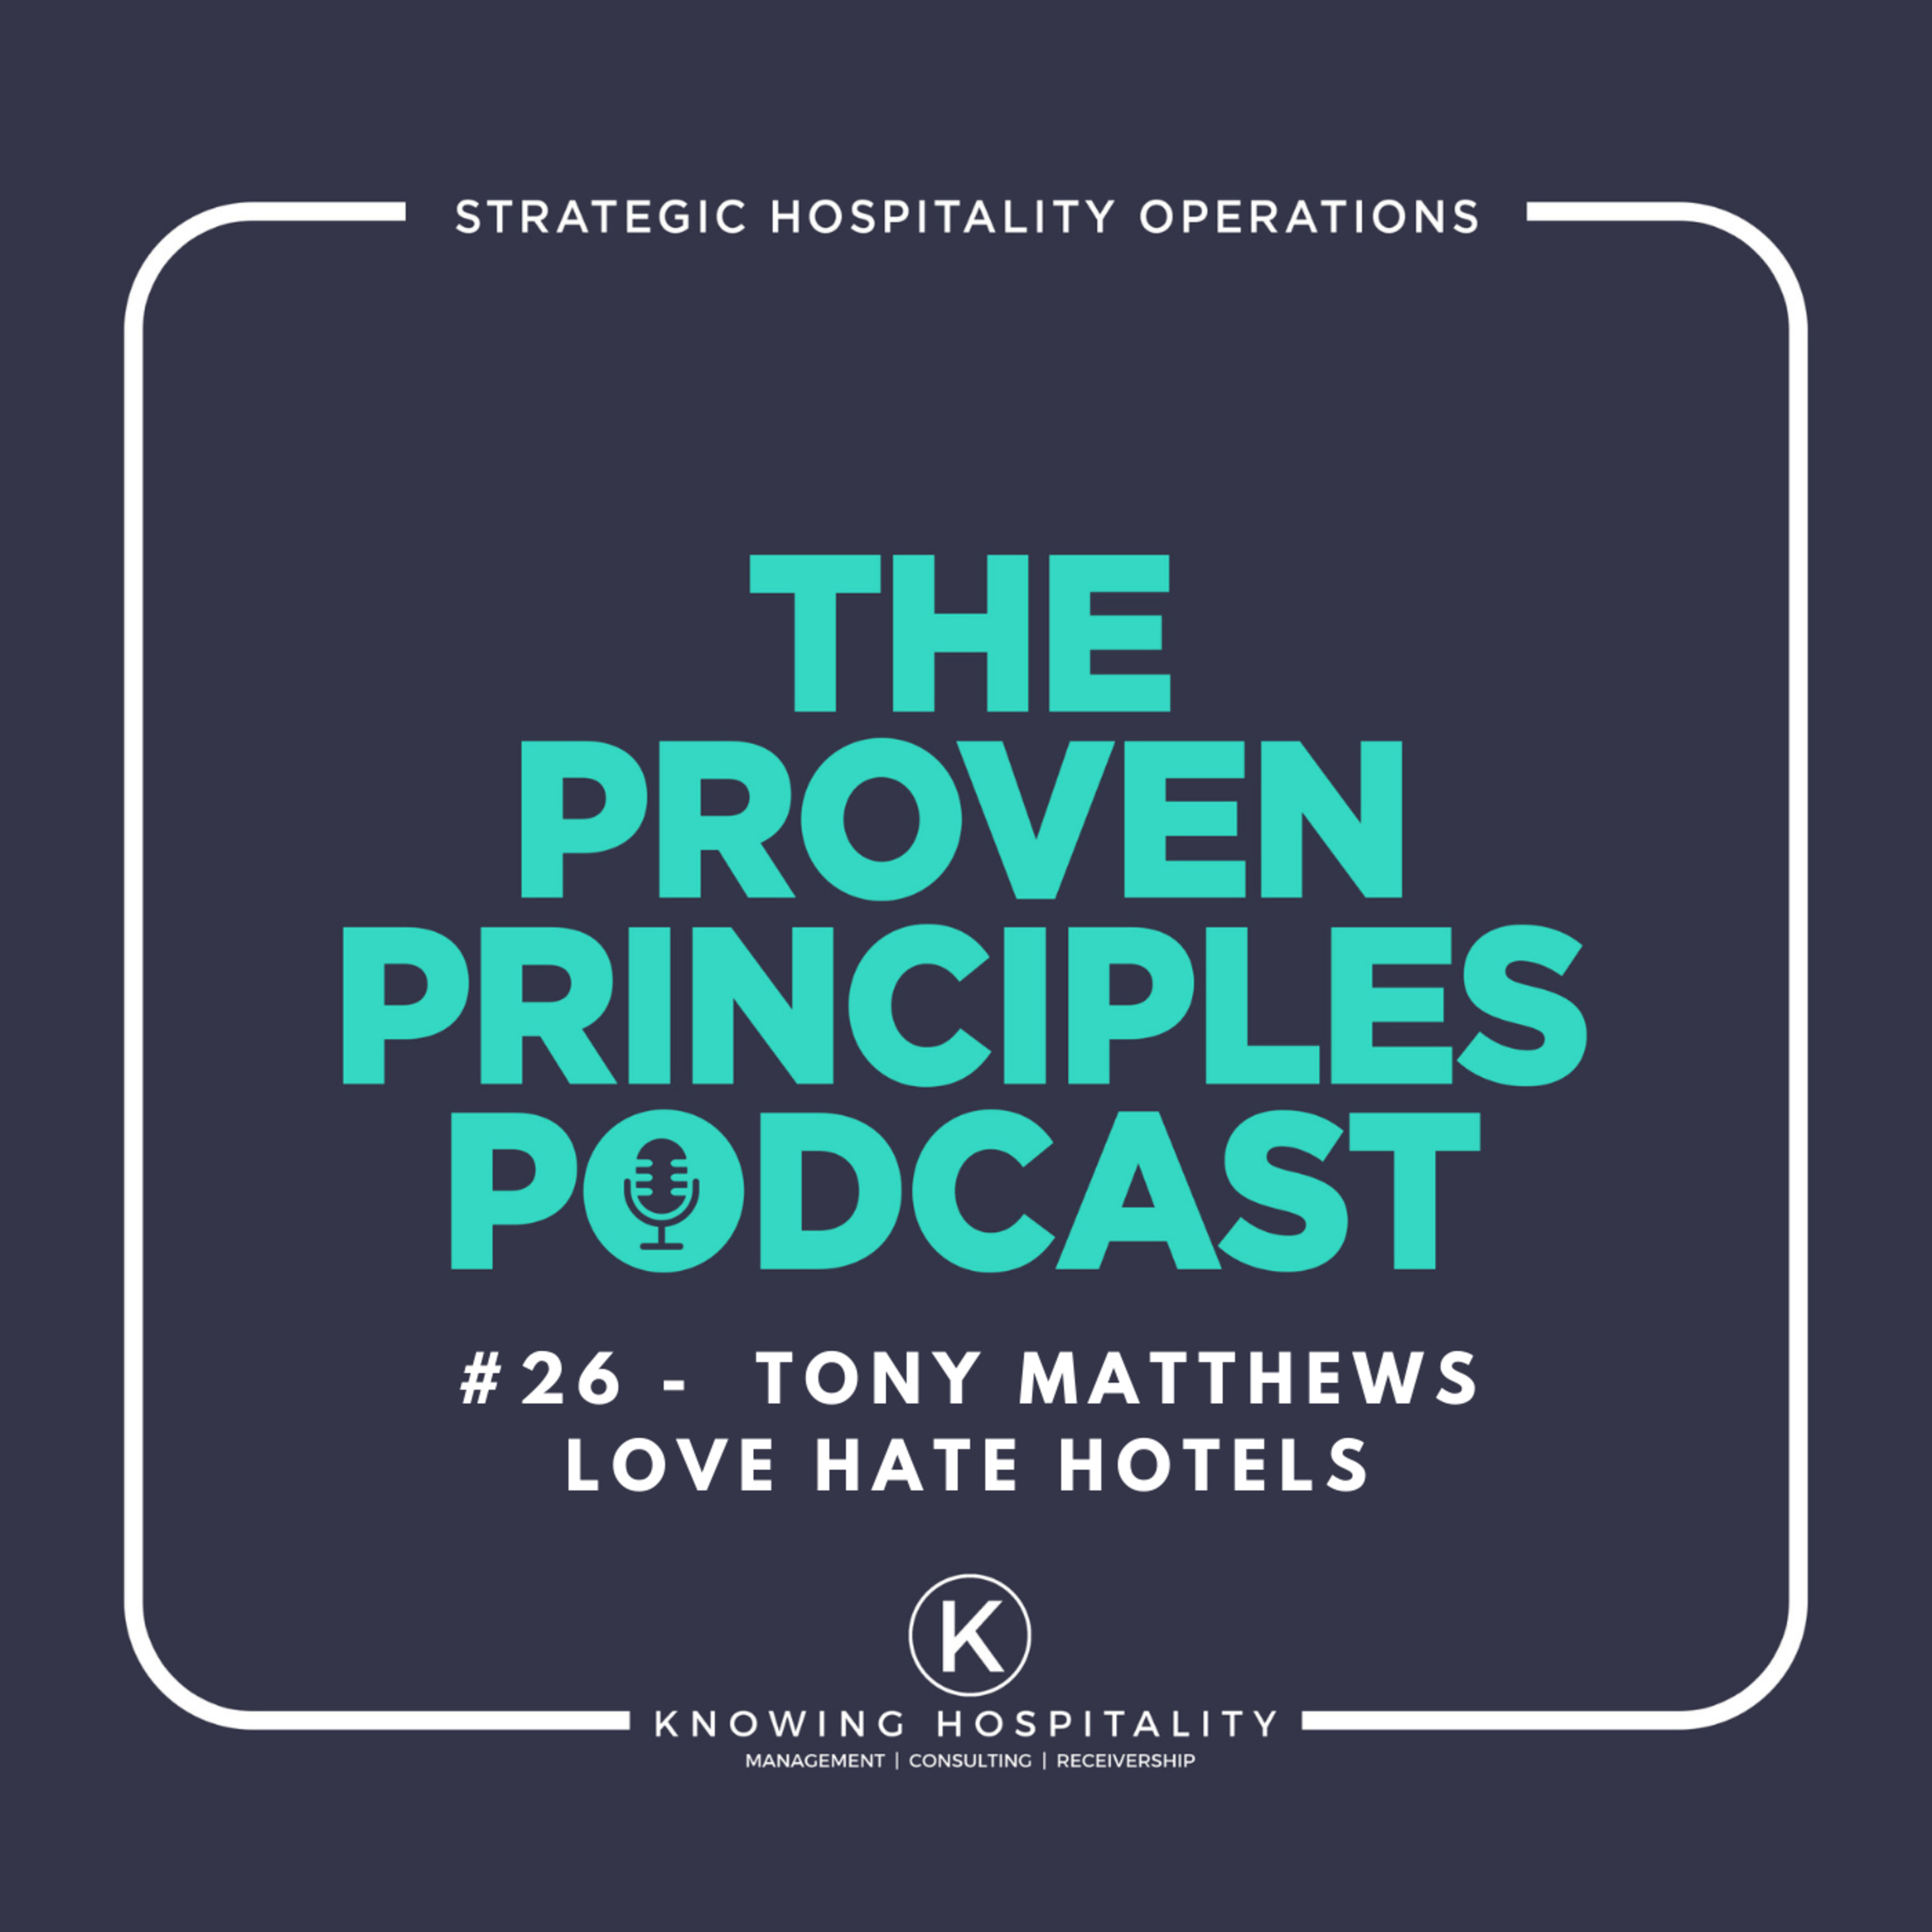 #26: Tony Matthews - On Love Hate Hotels and Career Development